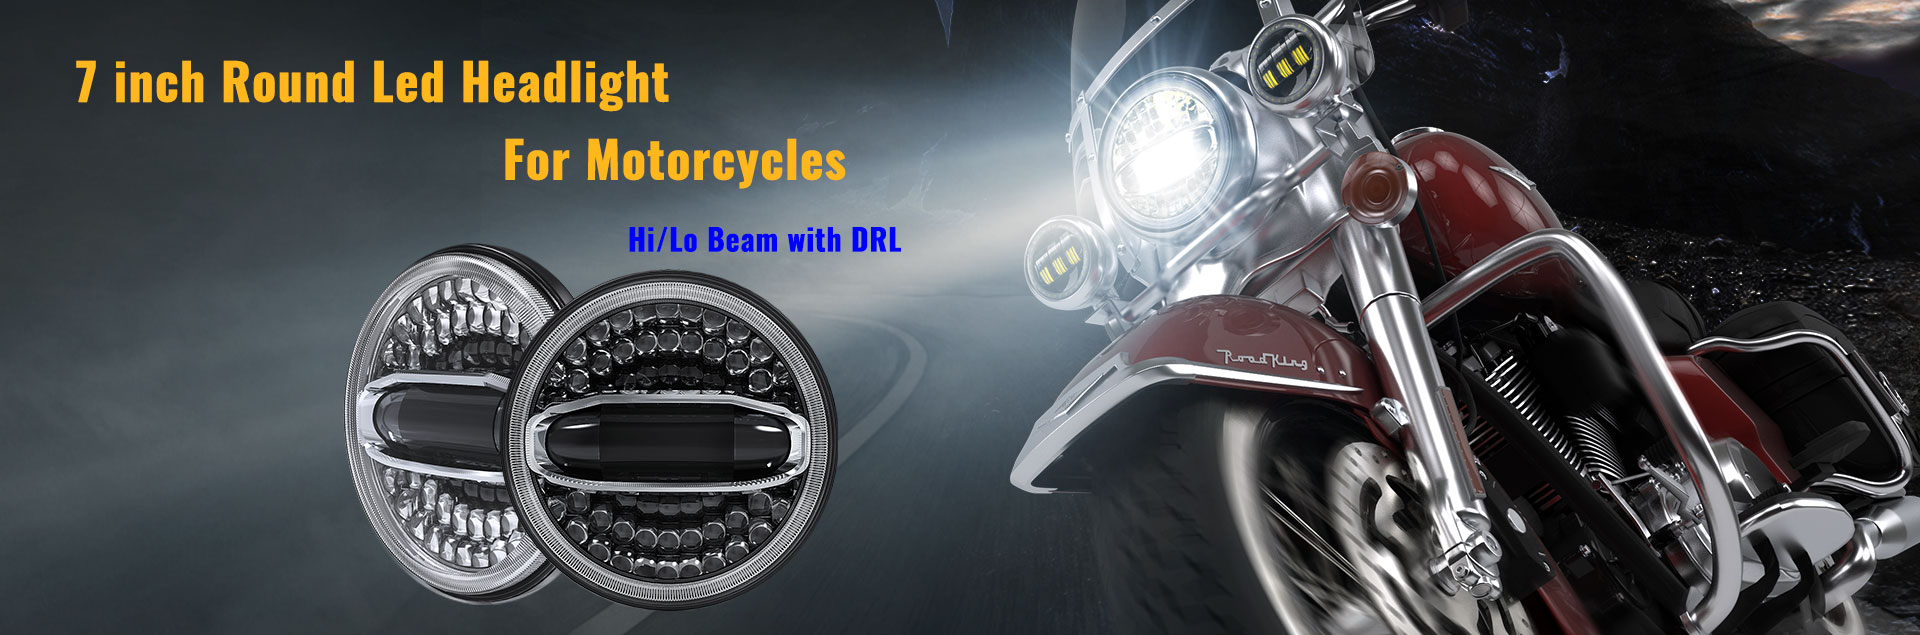 7 inch Halo Led Headlight for Motorcycles